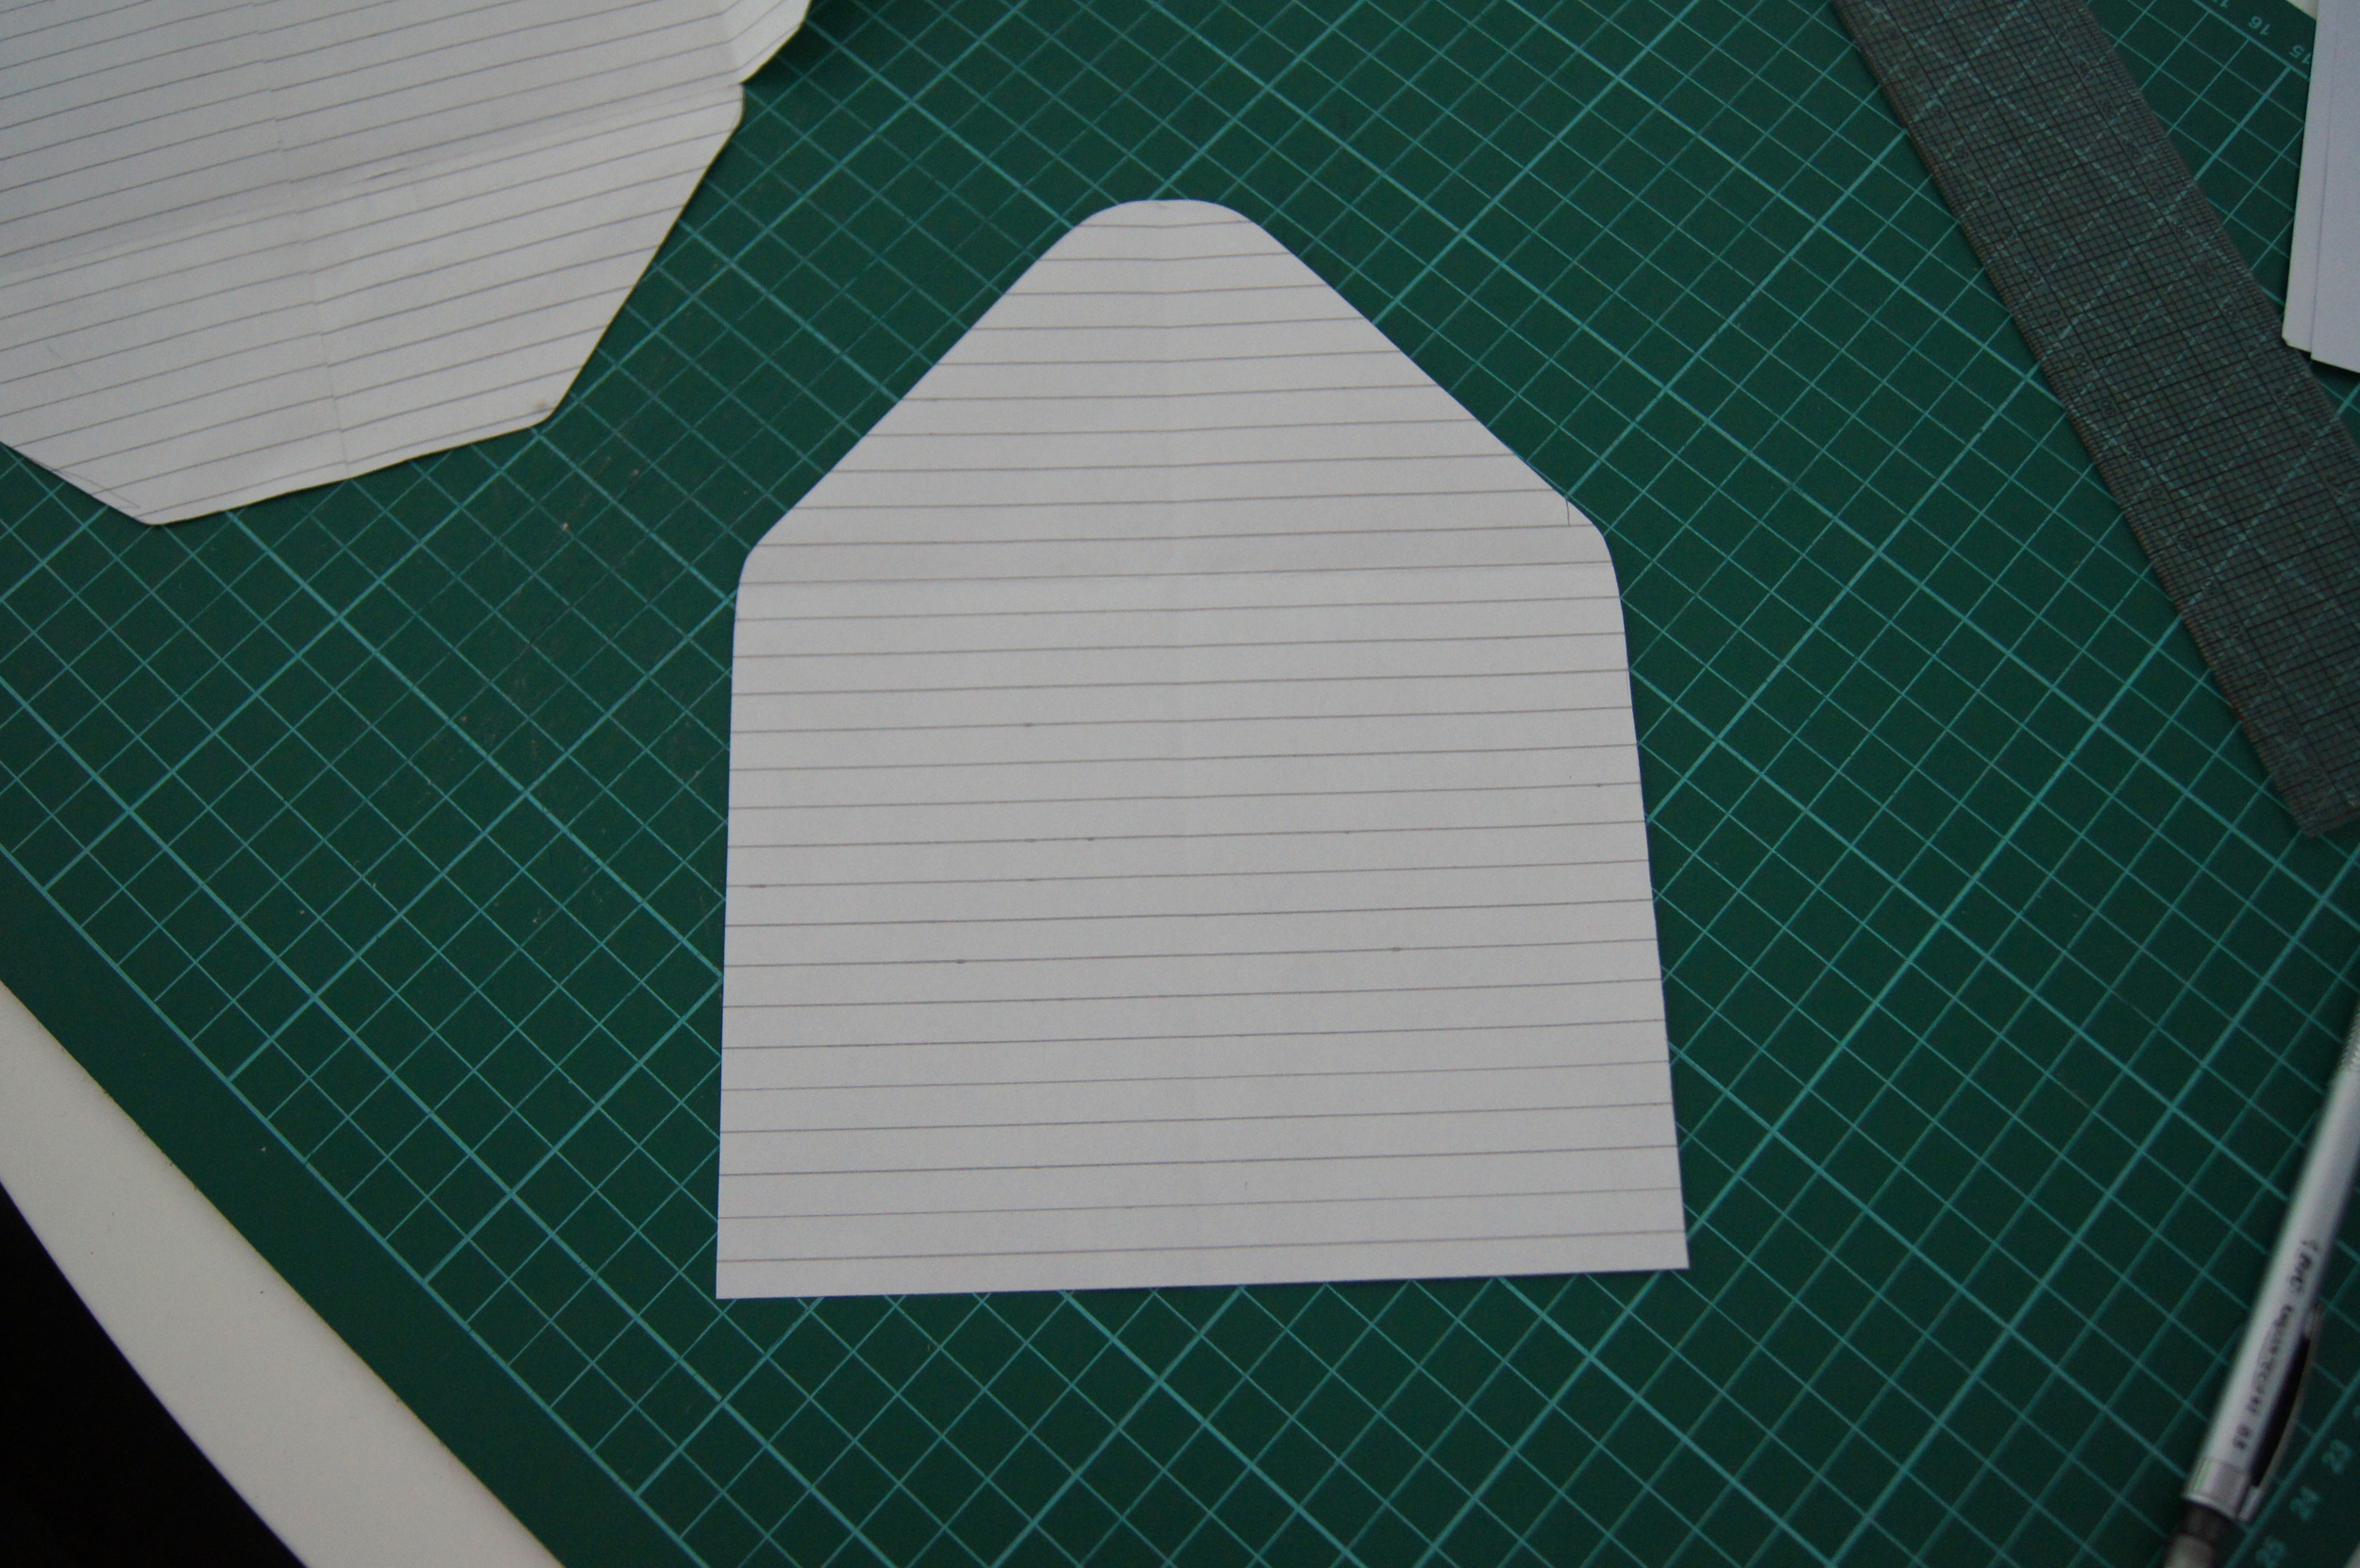 After you have made the template for the shell (navy part), you need to make one for the inside that we shall be using the gold polka dot cardstock for. To do this, I used the above finished template that we are using for the navy shell and traced around just the back section as you can see above on another piece of paper. I then made it a bit smaller so you can see a thin blue strip around the edges. The best way to do this, is to decide how thick you would like the strip and then with a ruler evenly measure around the template, cut along the new line, and then fold the template in half to make sure the sides are perfectly even; and do any trimming if needed.